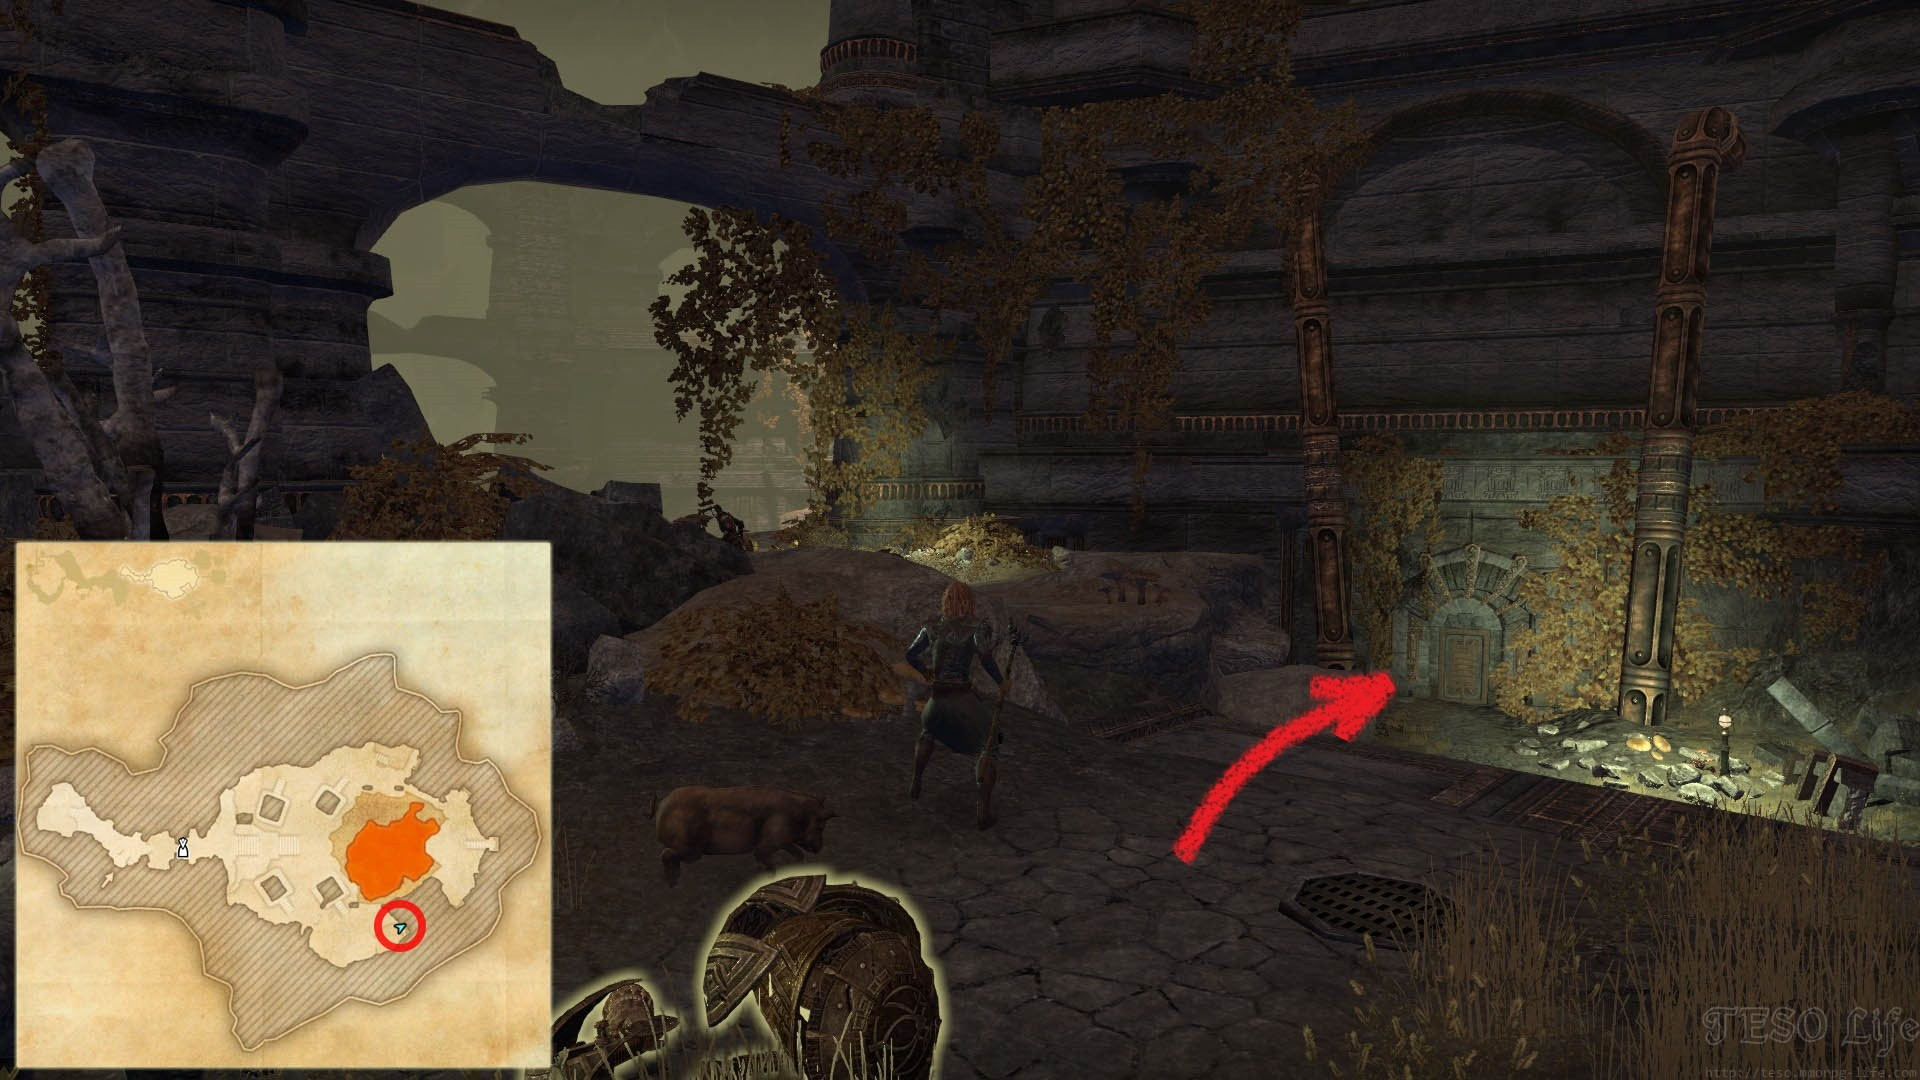 ESO Morrowind Nchuleftingth Core Entrance Door Location